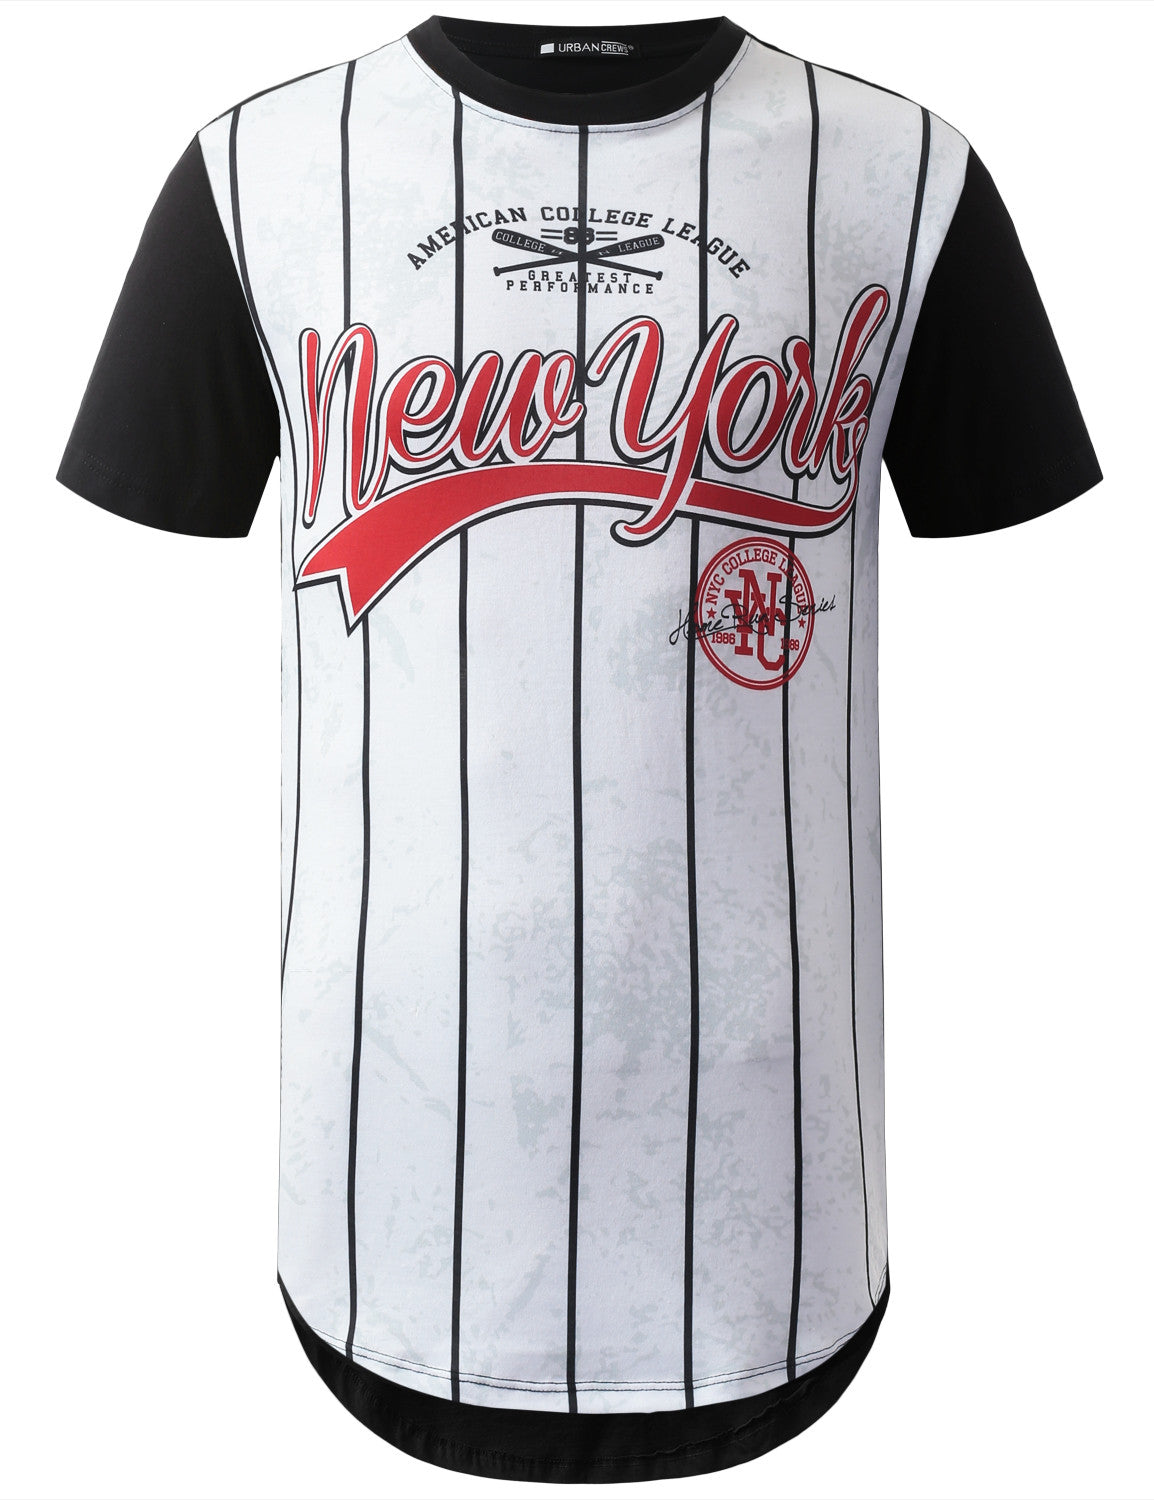 WHITE New York Jersey Longline Crewneck Tshirts- URBANCREWS